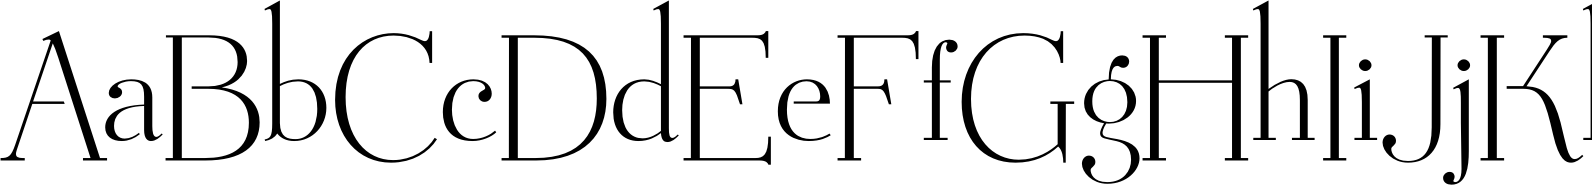 Mussica Font